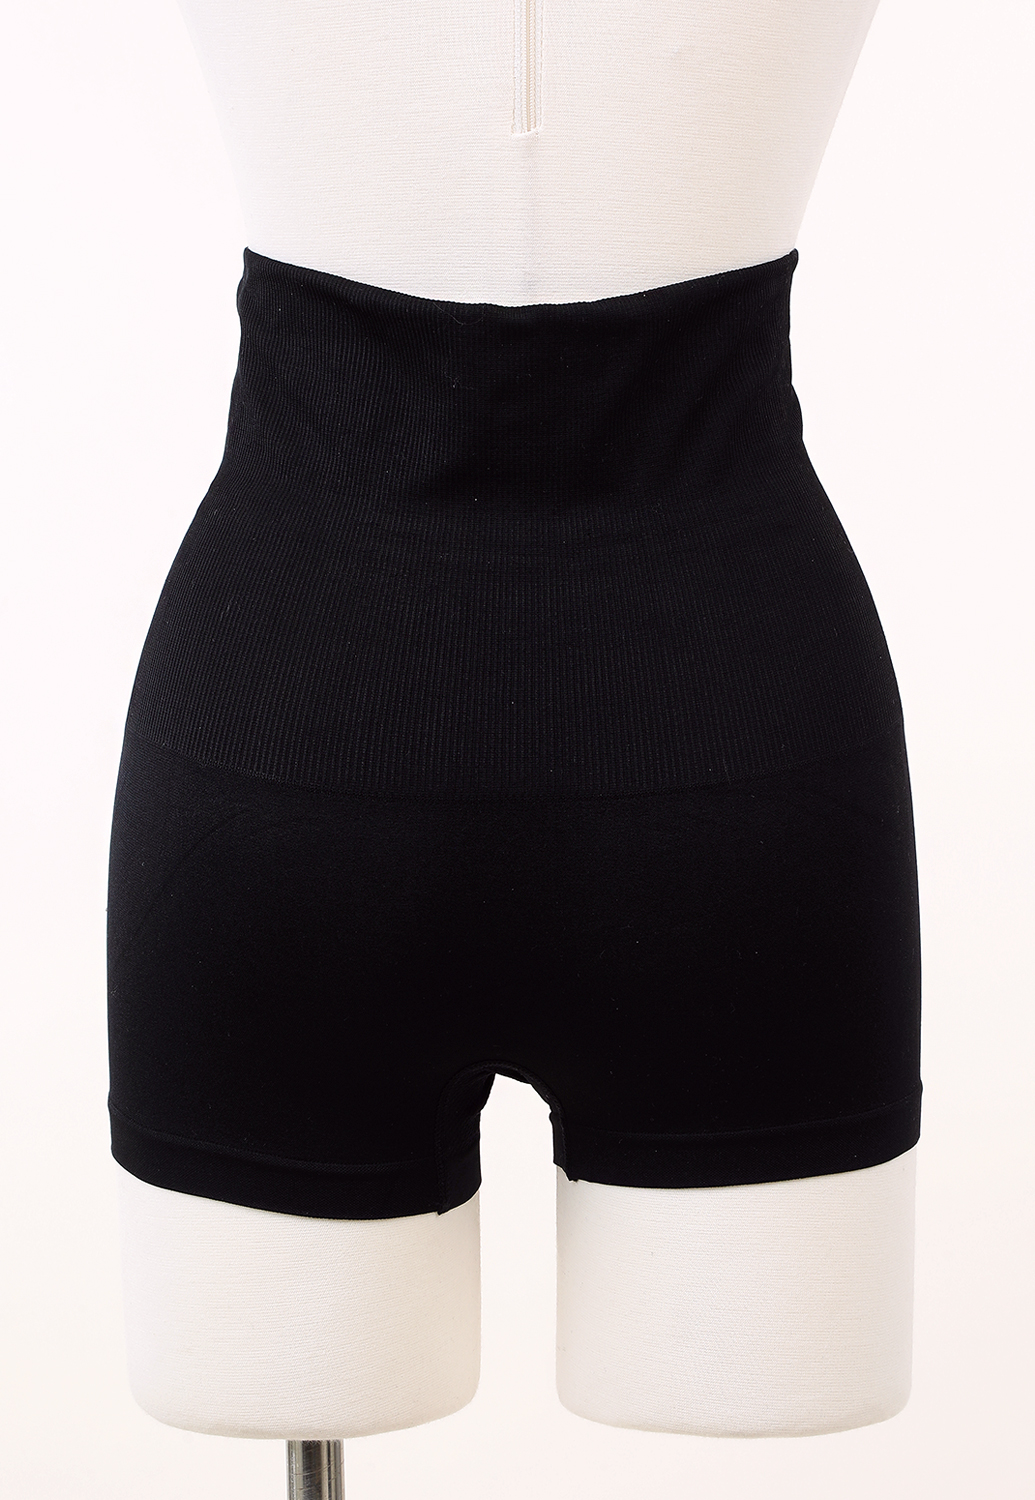 Tummy Control Highwaist Shorts